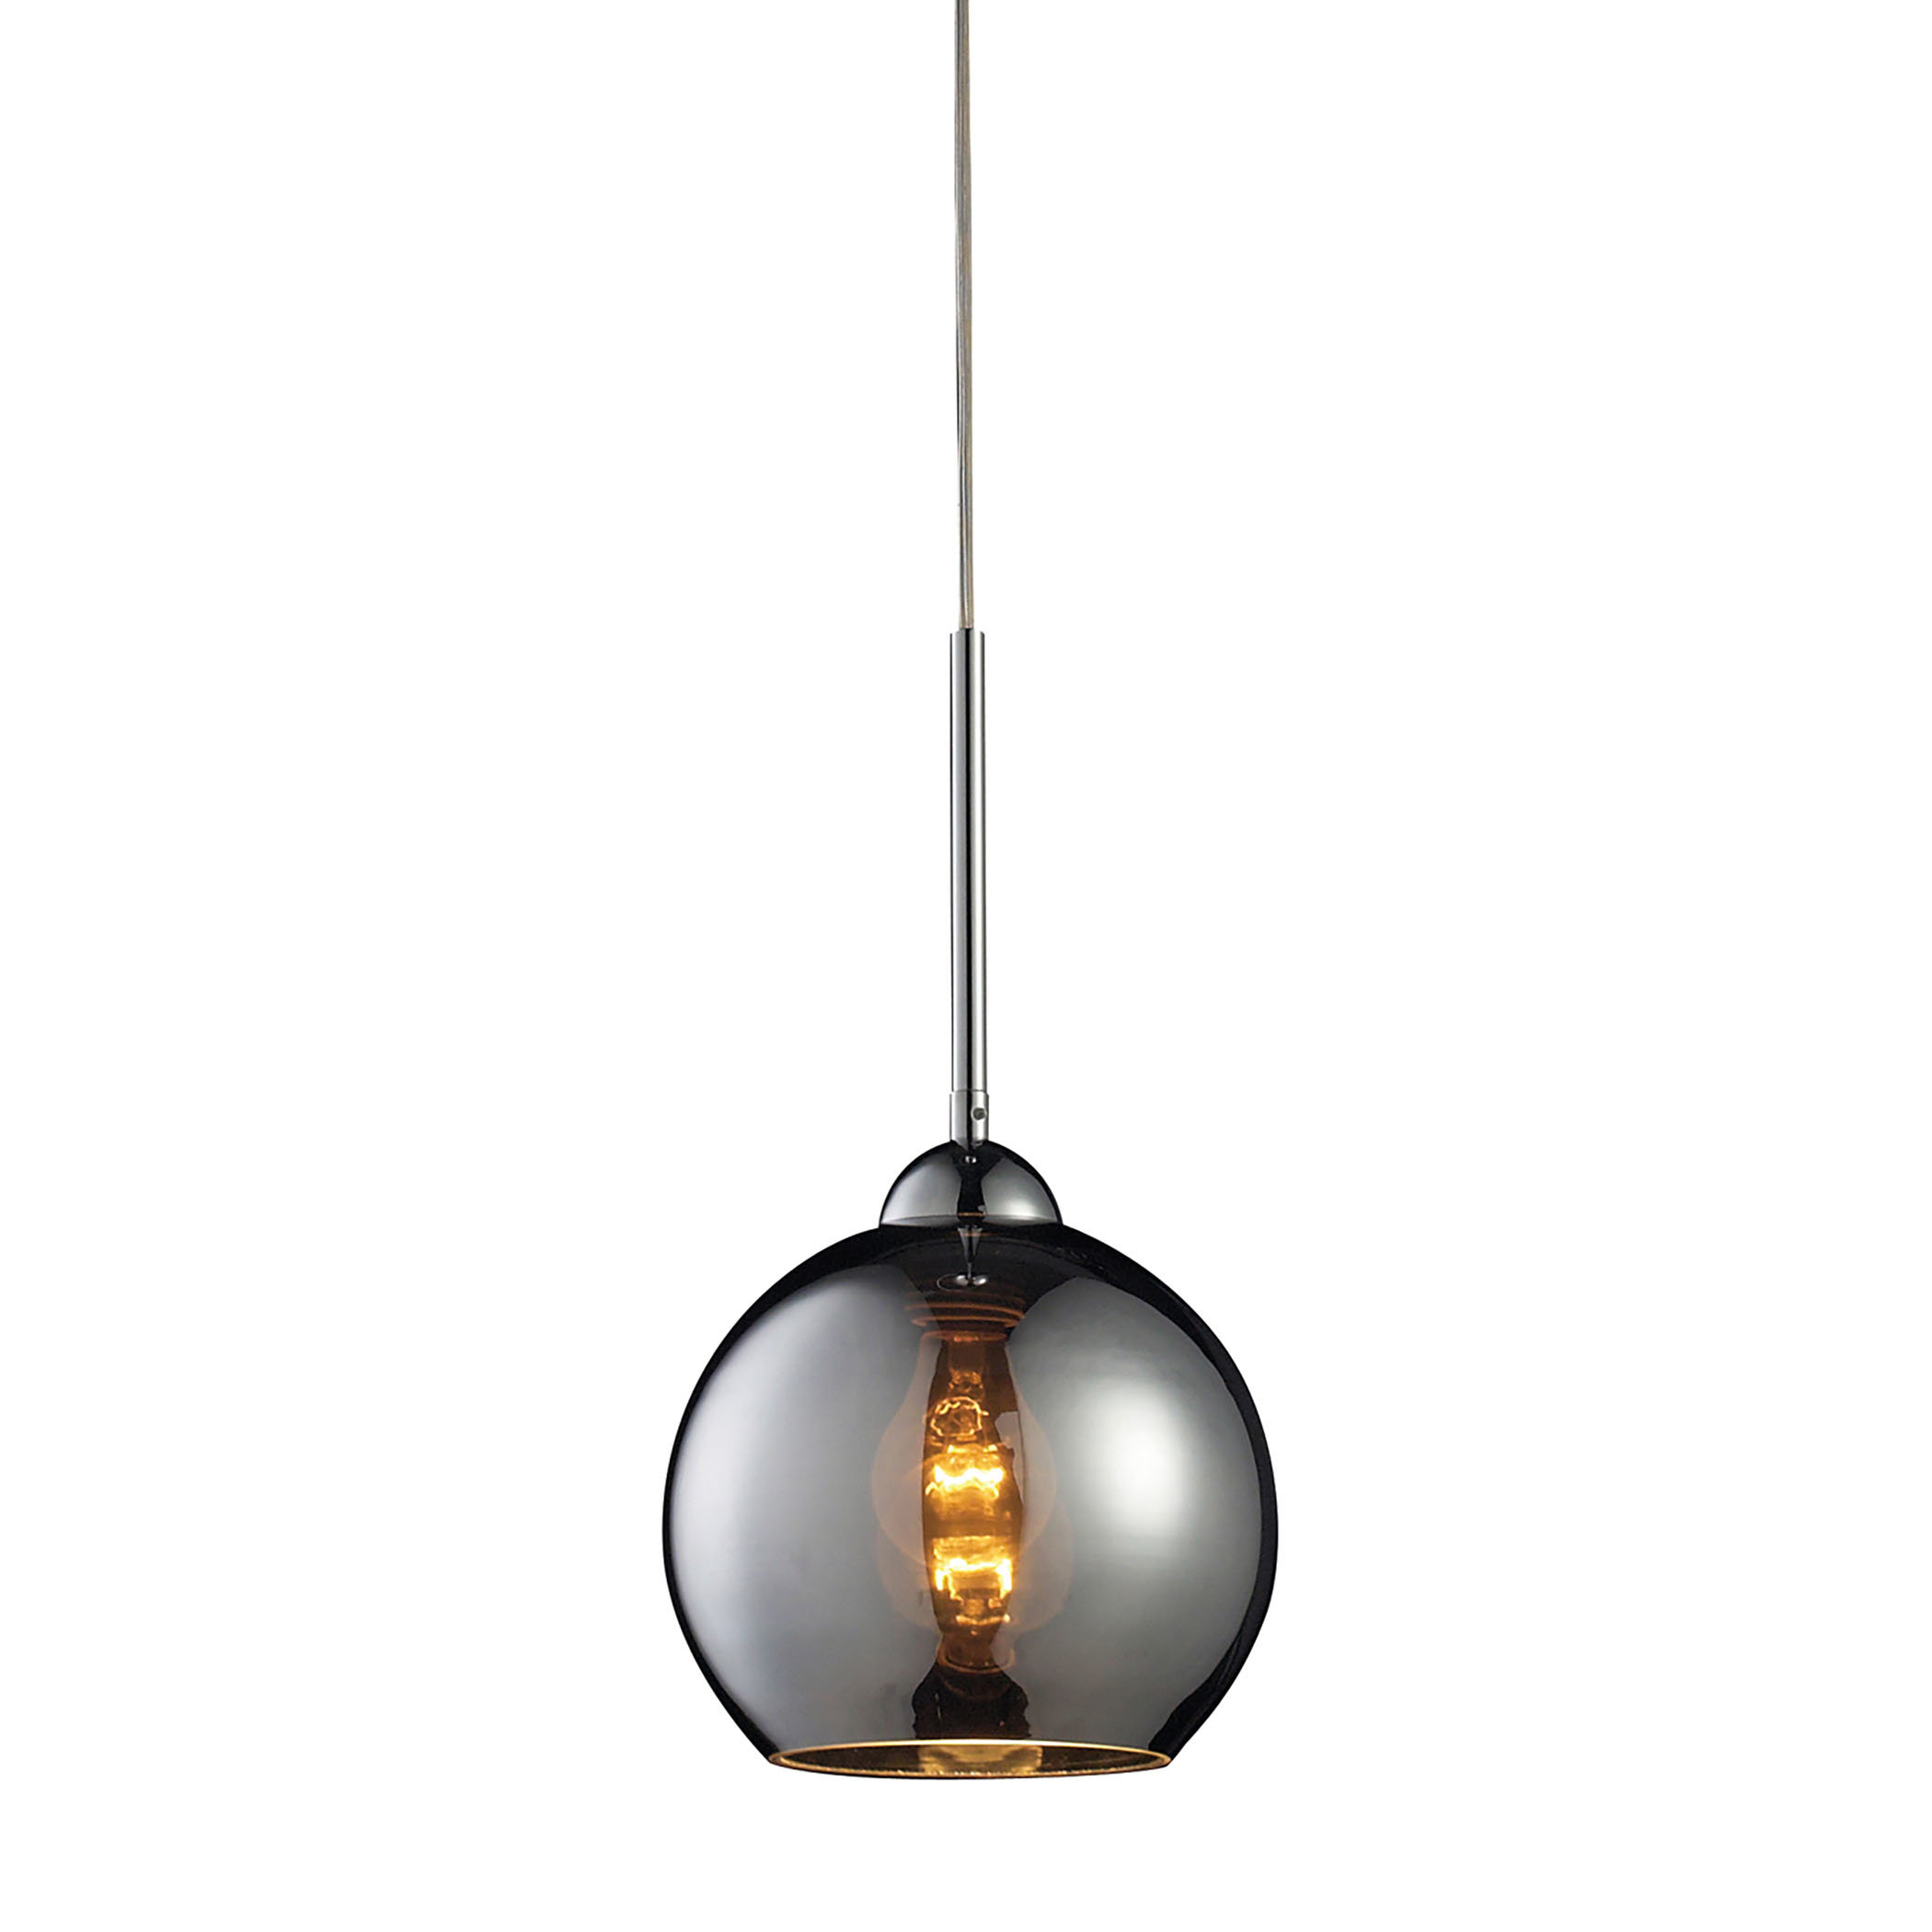 Devereaux 1 Light Single Globe Pendants Intended For 2020 Delia 1 Light Mini Pendant (View 4 of 20)